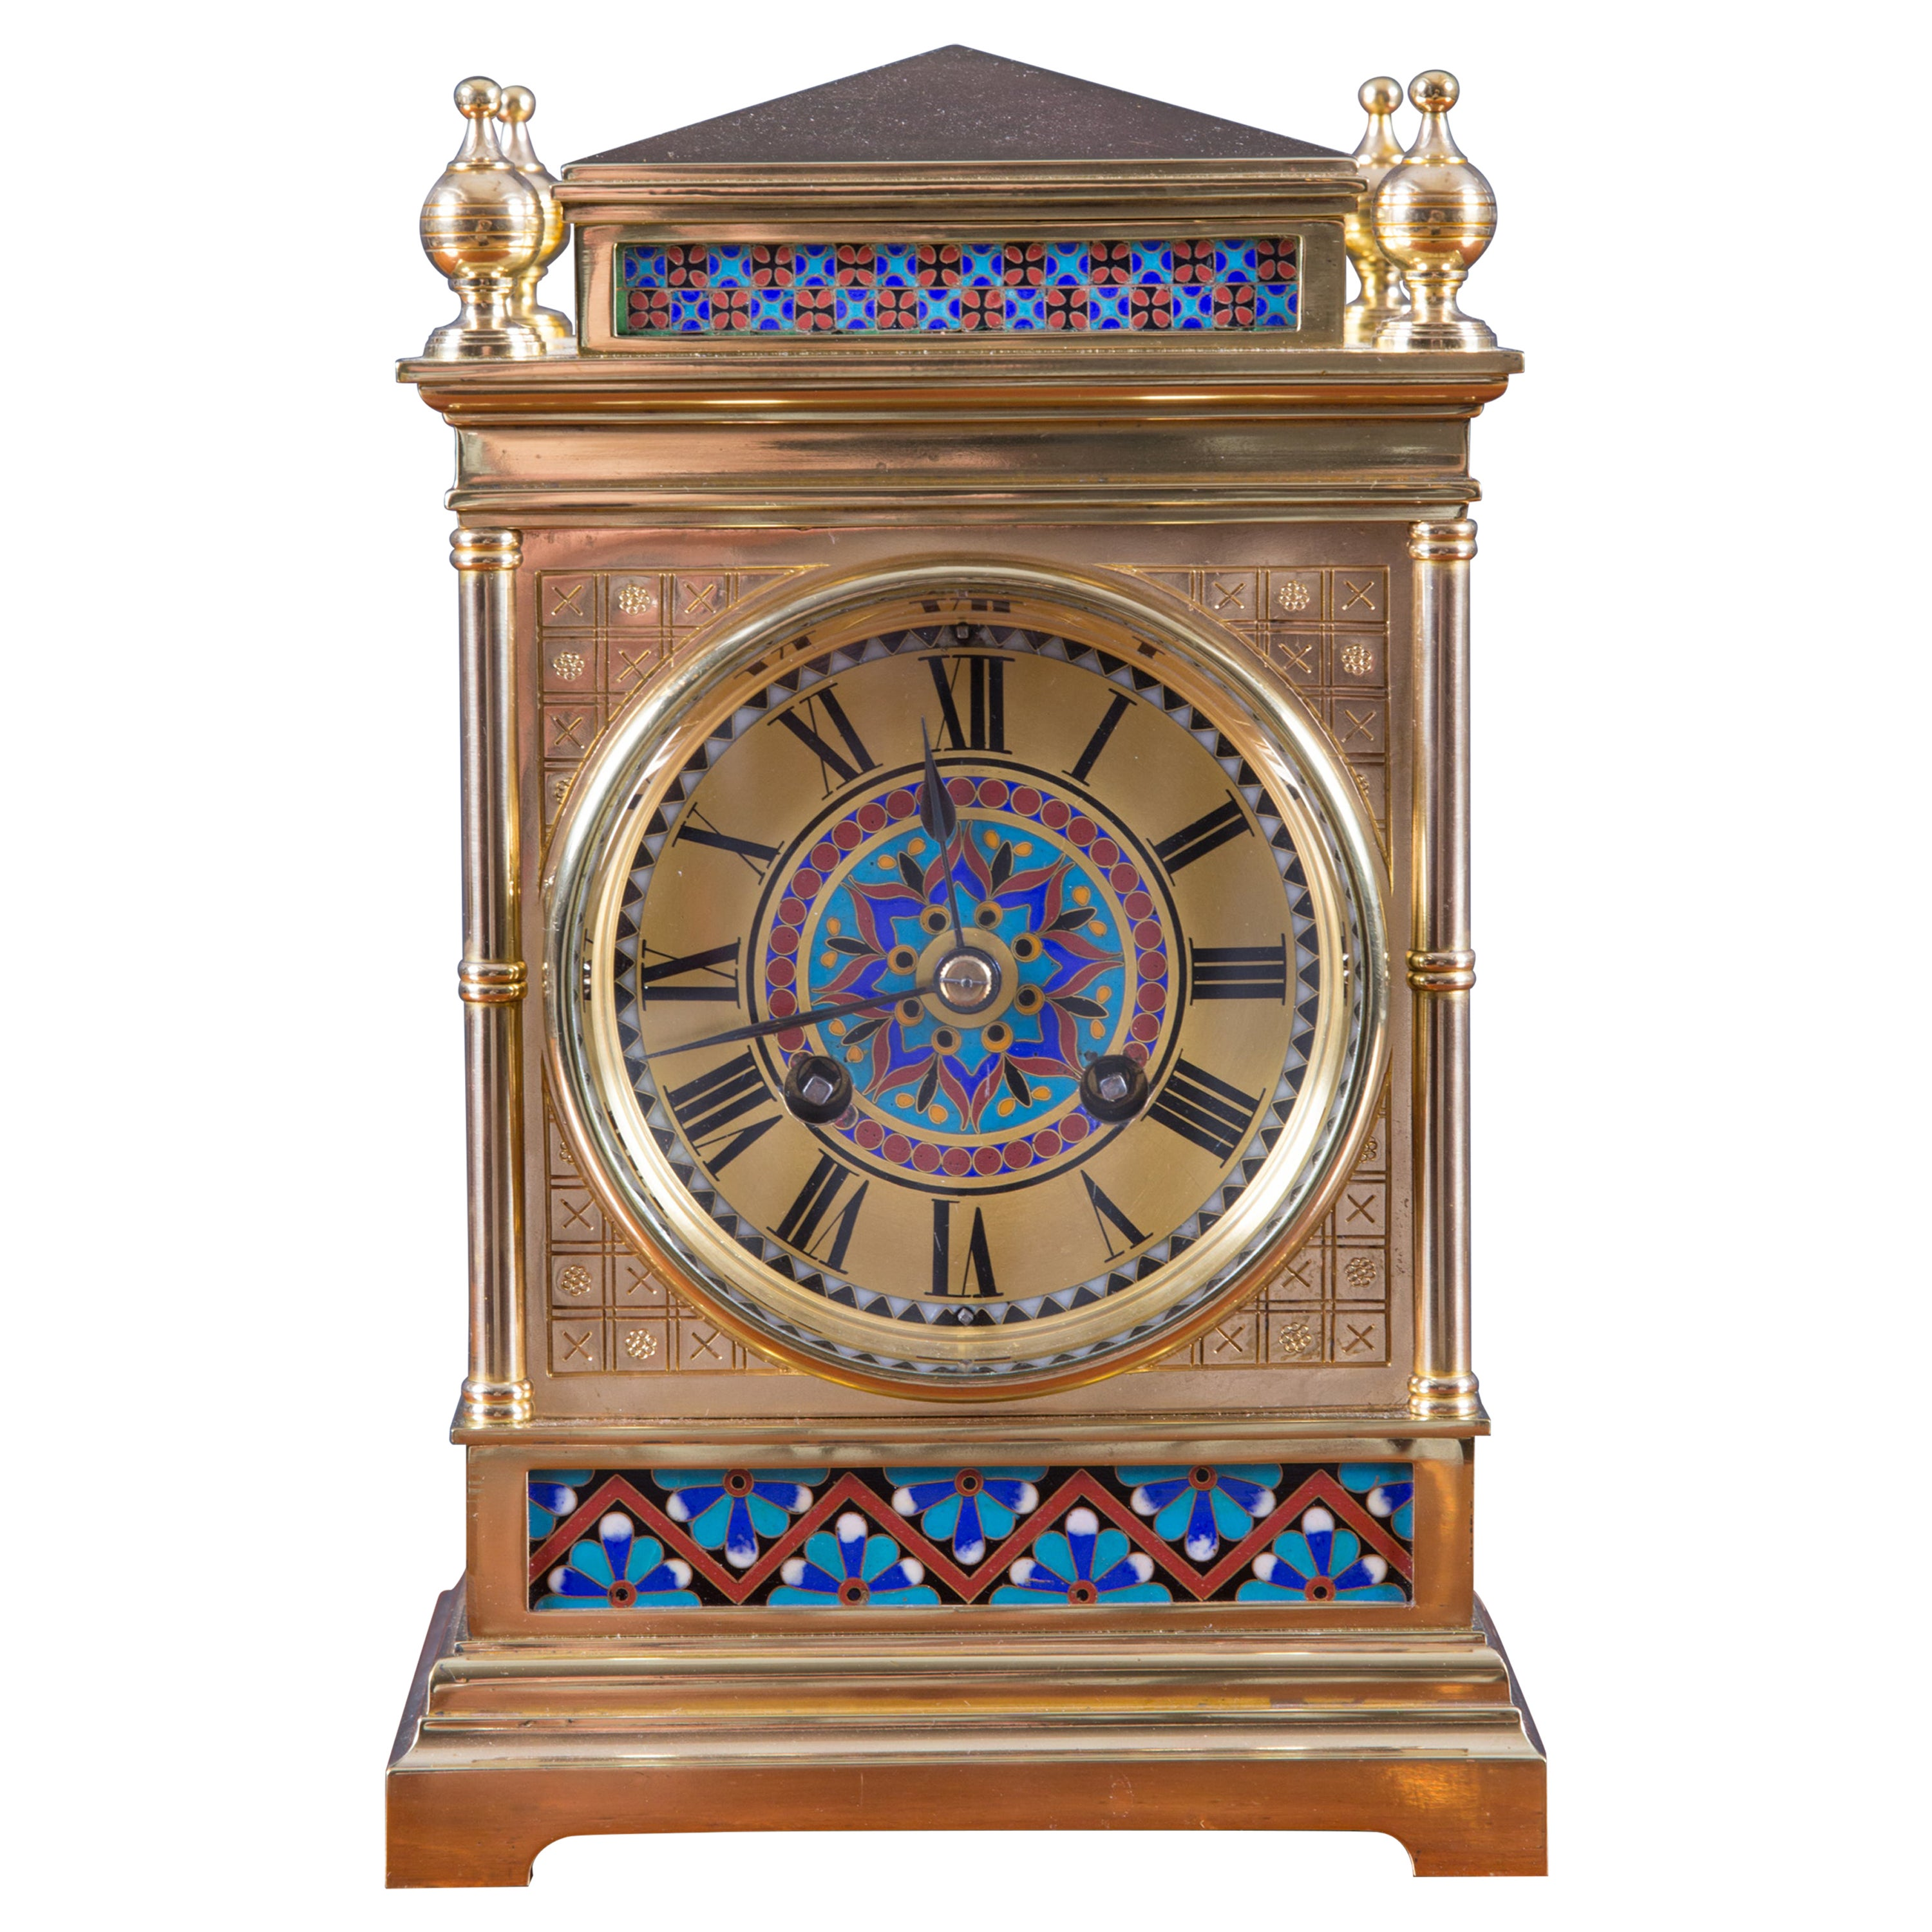 French Ormolu Mantel Clock with Champleve Decoration by Japy Freres